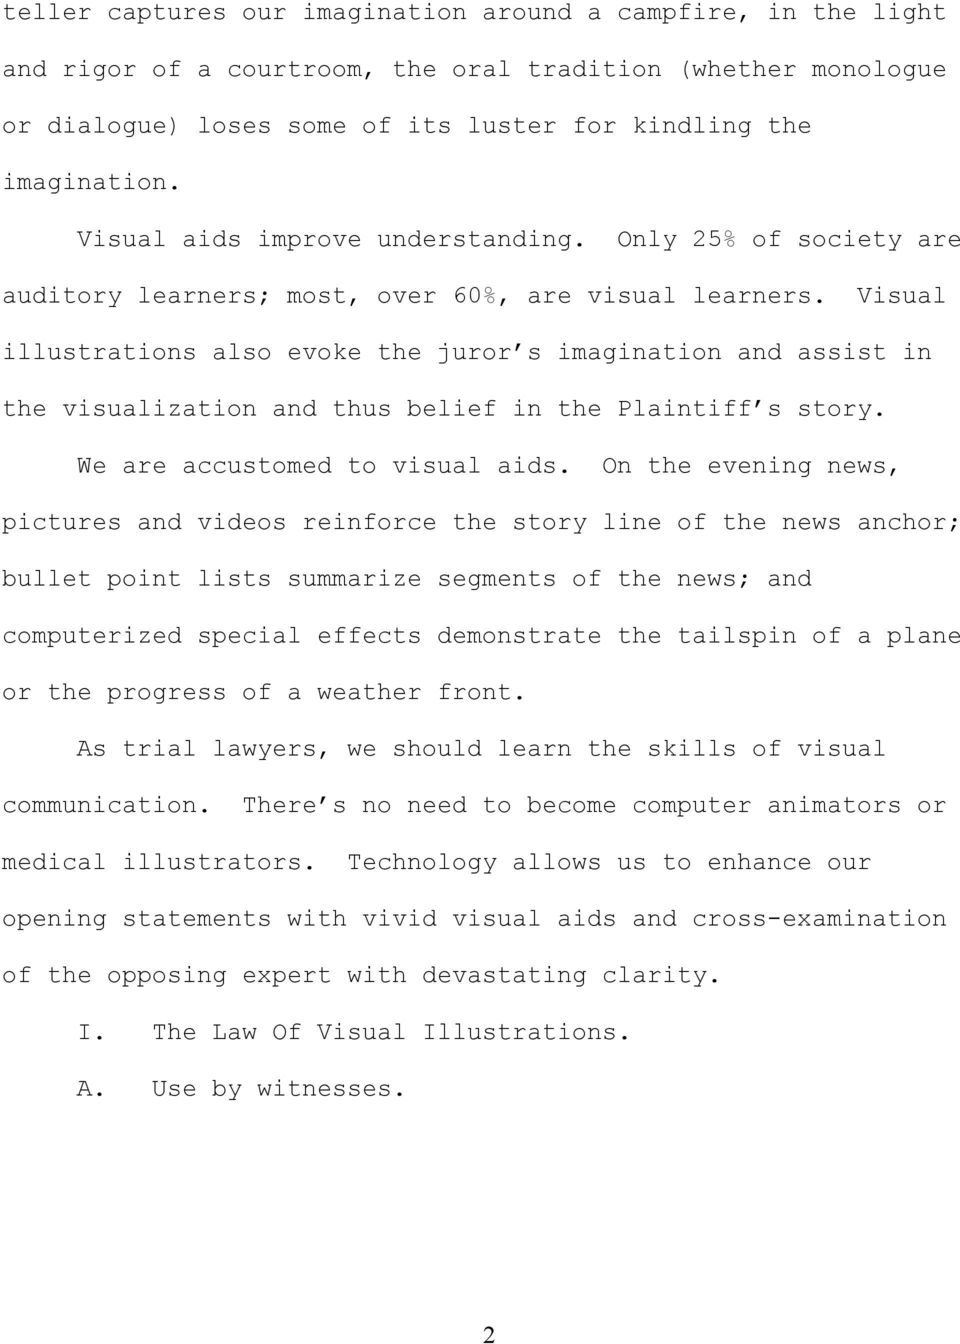 Visual illustrations also evoke the juror s imagination and assist in the visualization and thus belief in the Plaintiff s story. We are accustomed to visual aids.